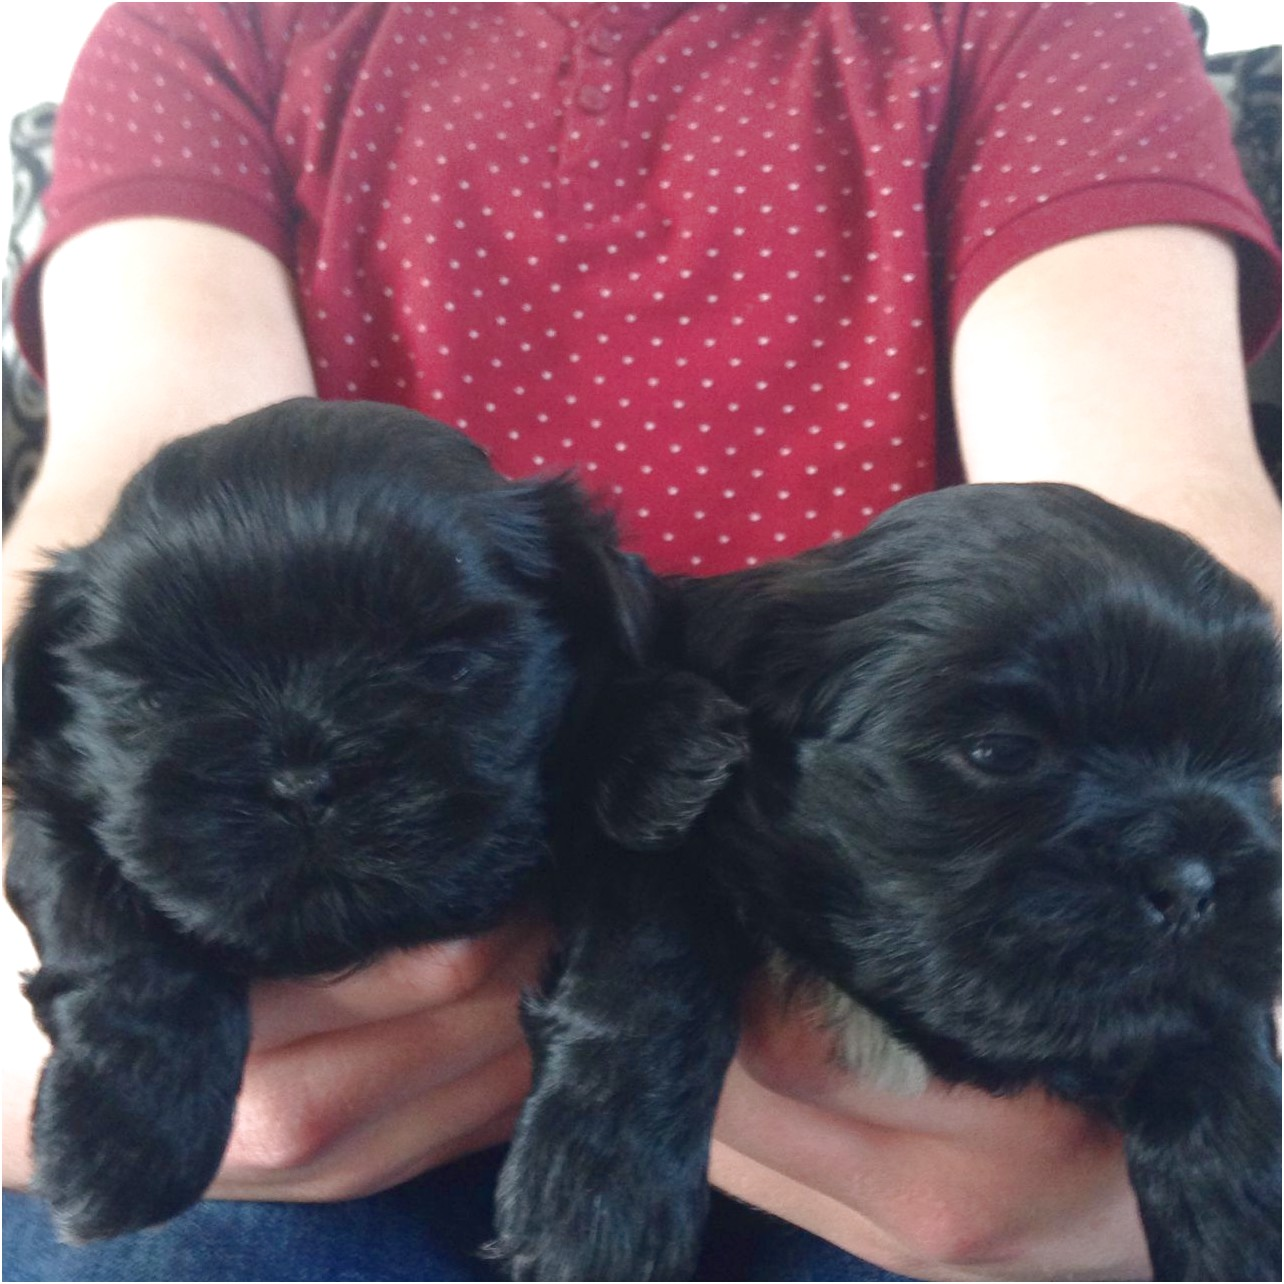 shih tzu puppies for sale liverpool